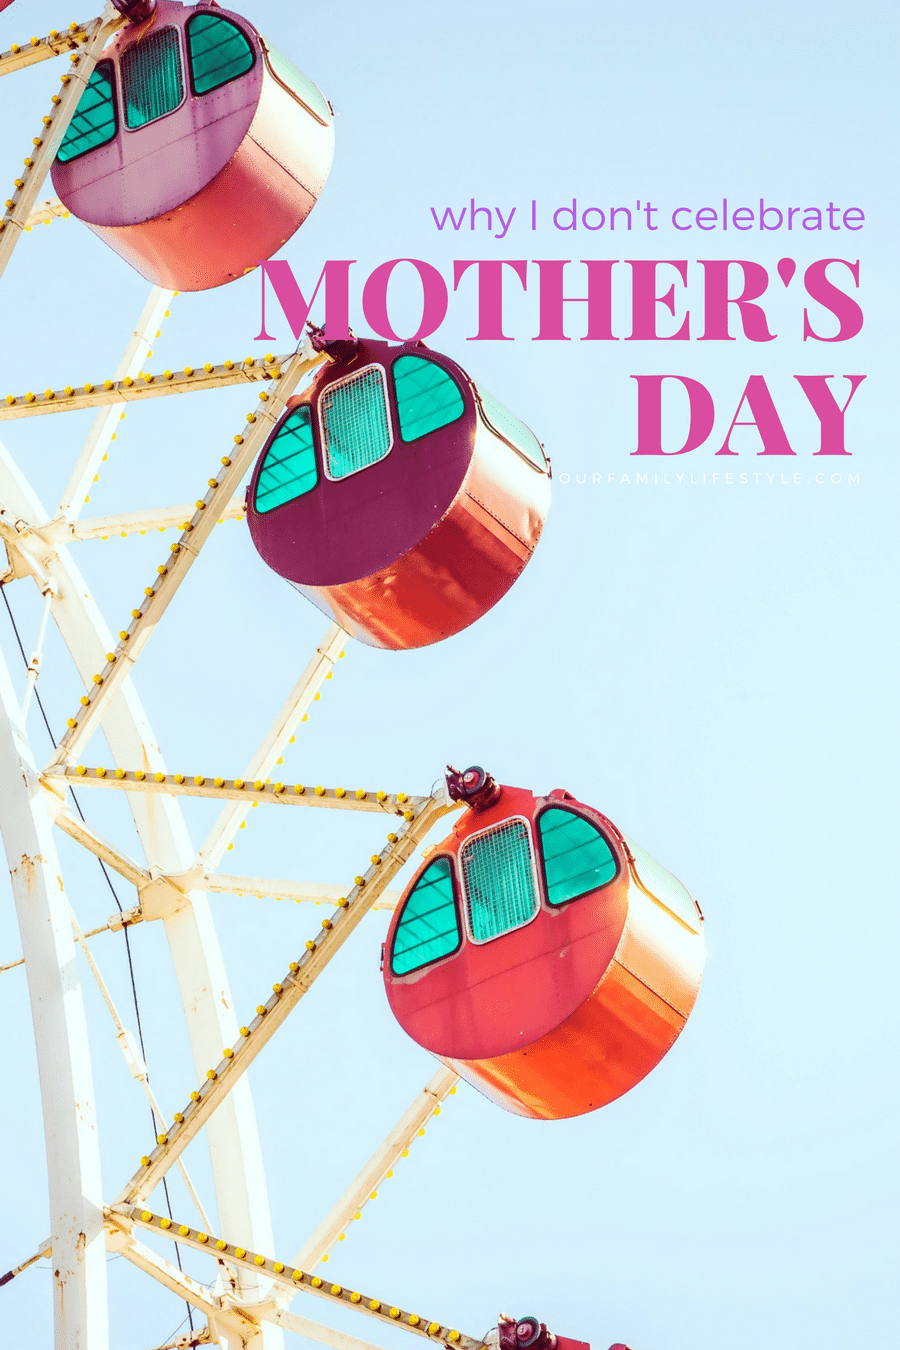 why I don't celebrate Mother's Day